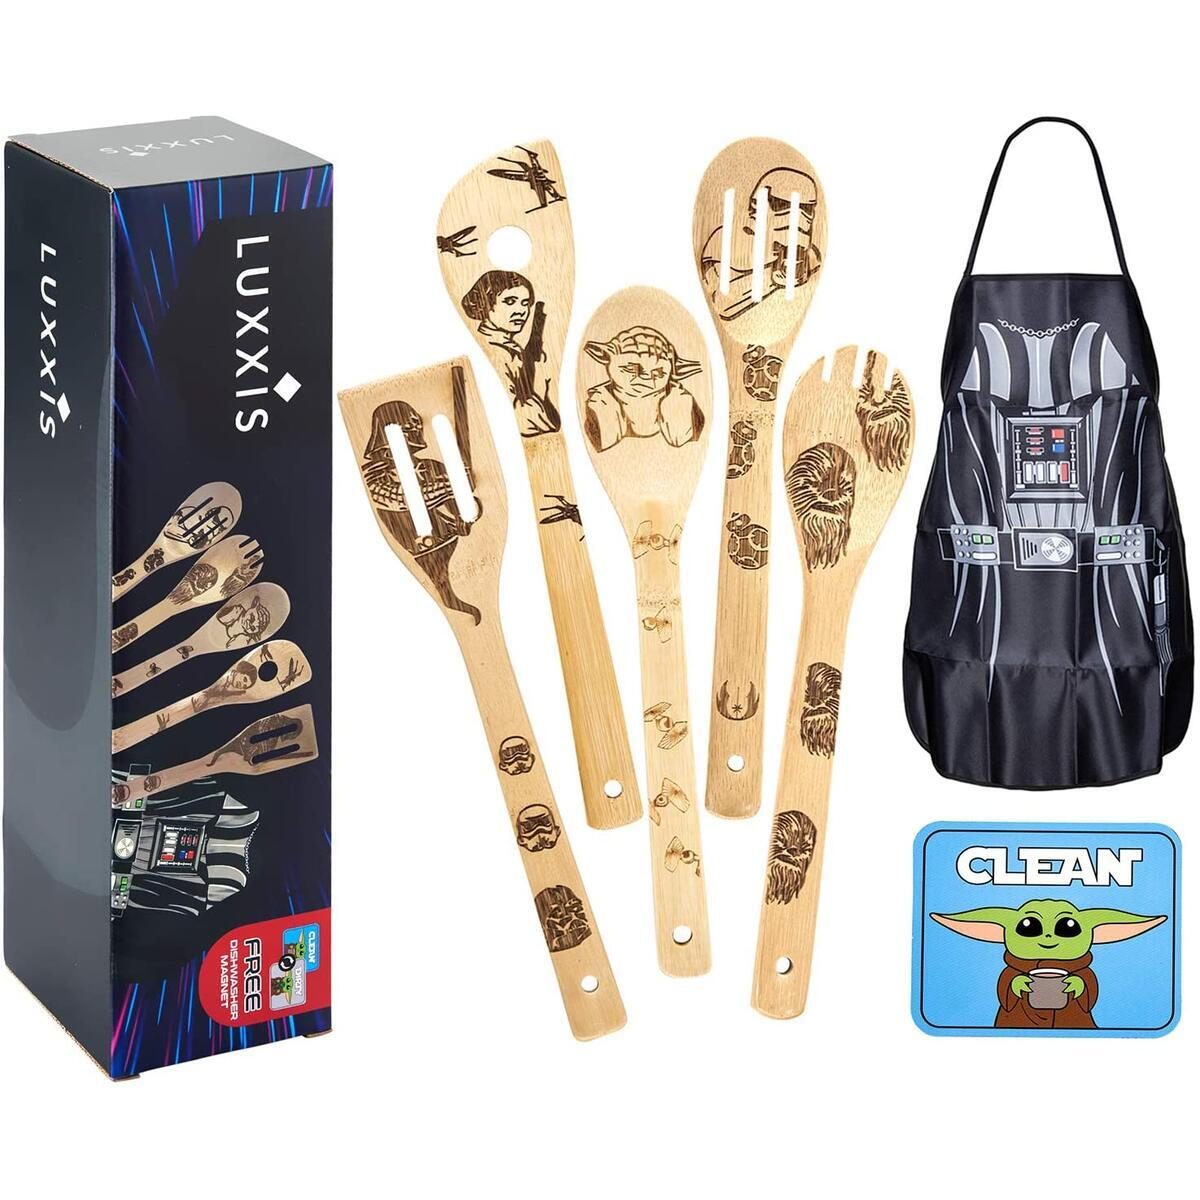 Luxxis Star Wars Cooking Utensils 7PC Set - 5X Organic Bamboo Spoons, 1X Kitchen Star Wars Apron and 1X Dishwasher Magnet – Premium Cookware Darth Vader Apron – Double-Sided Magnet Stickers